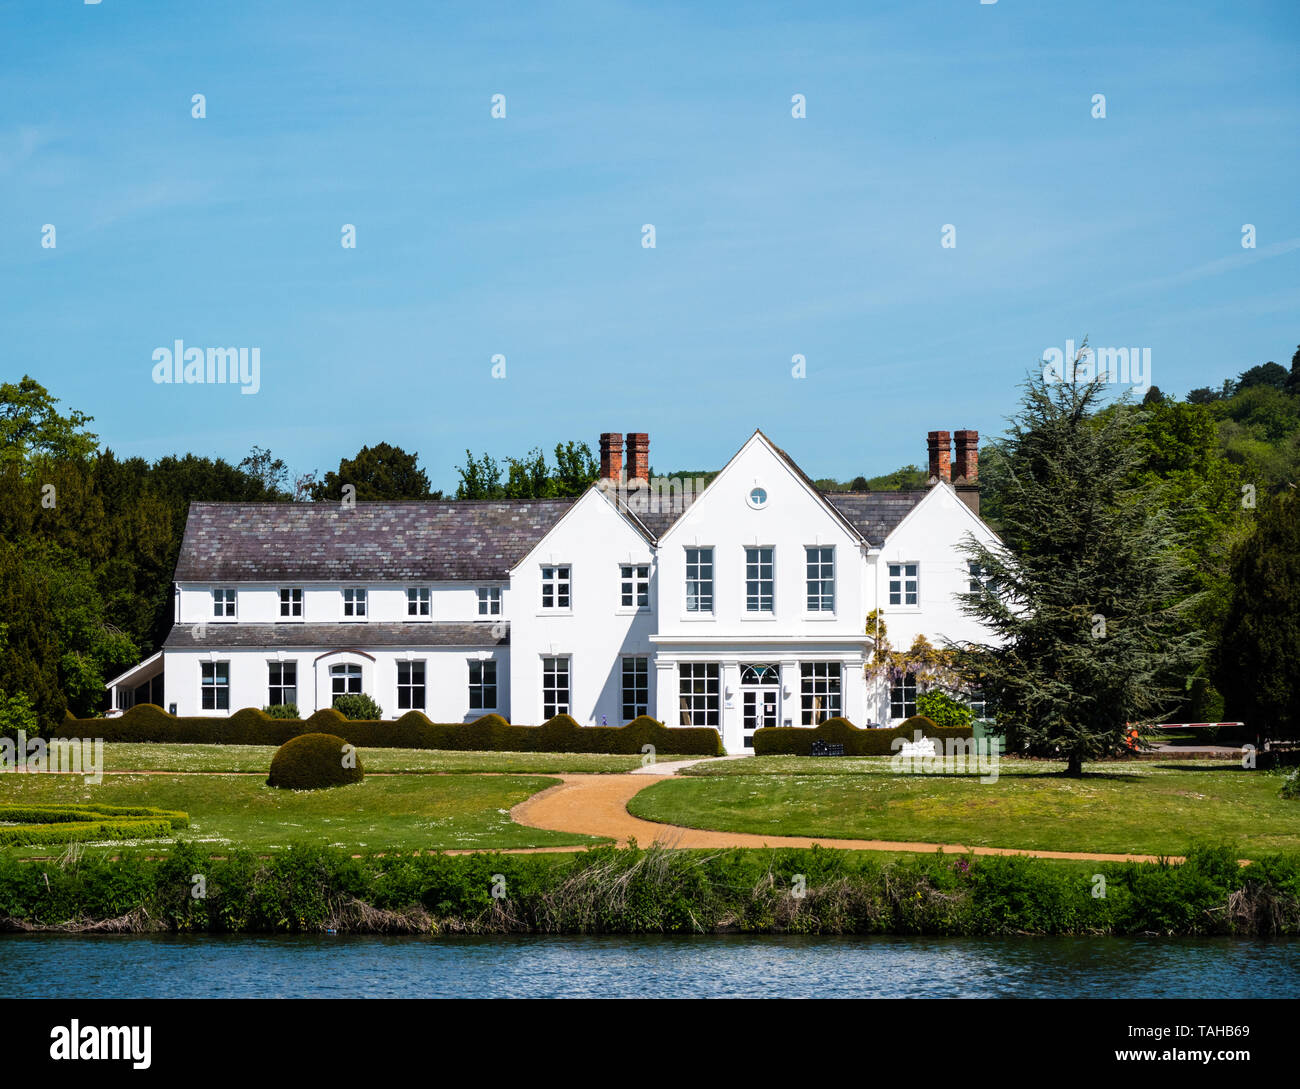 Henley Business School, Part of Reading University, Greenlands Country House, on The River Thames, Buckinghamshire, England, UK, GB. Stock Photo